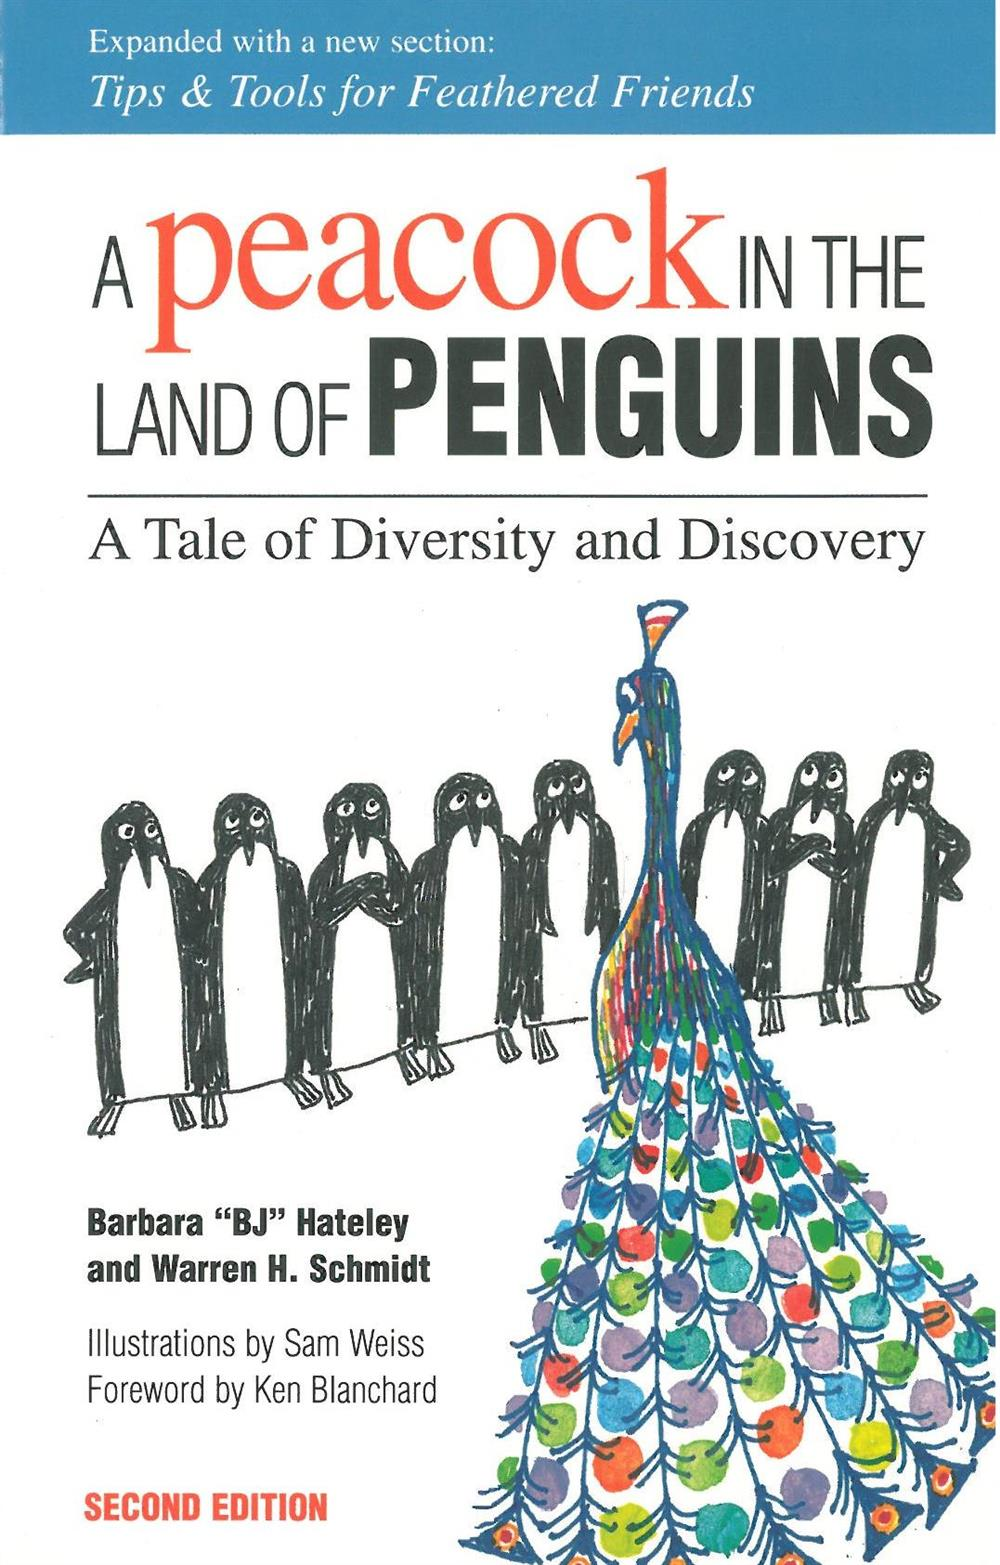 A peacock in the penguins.jpg